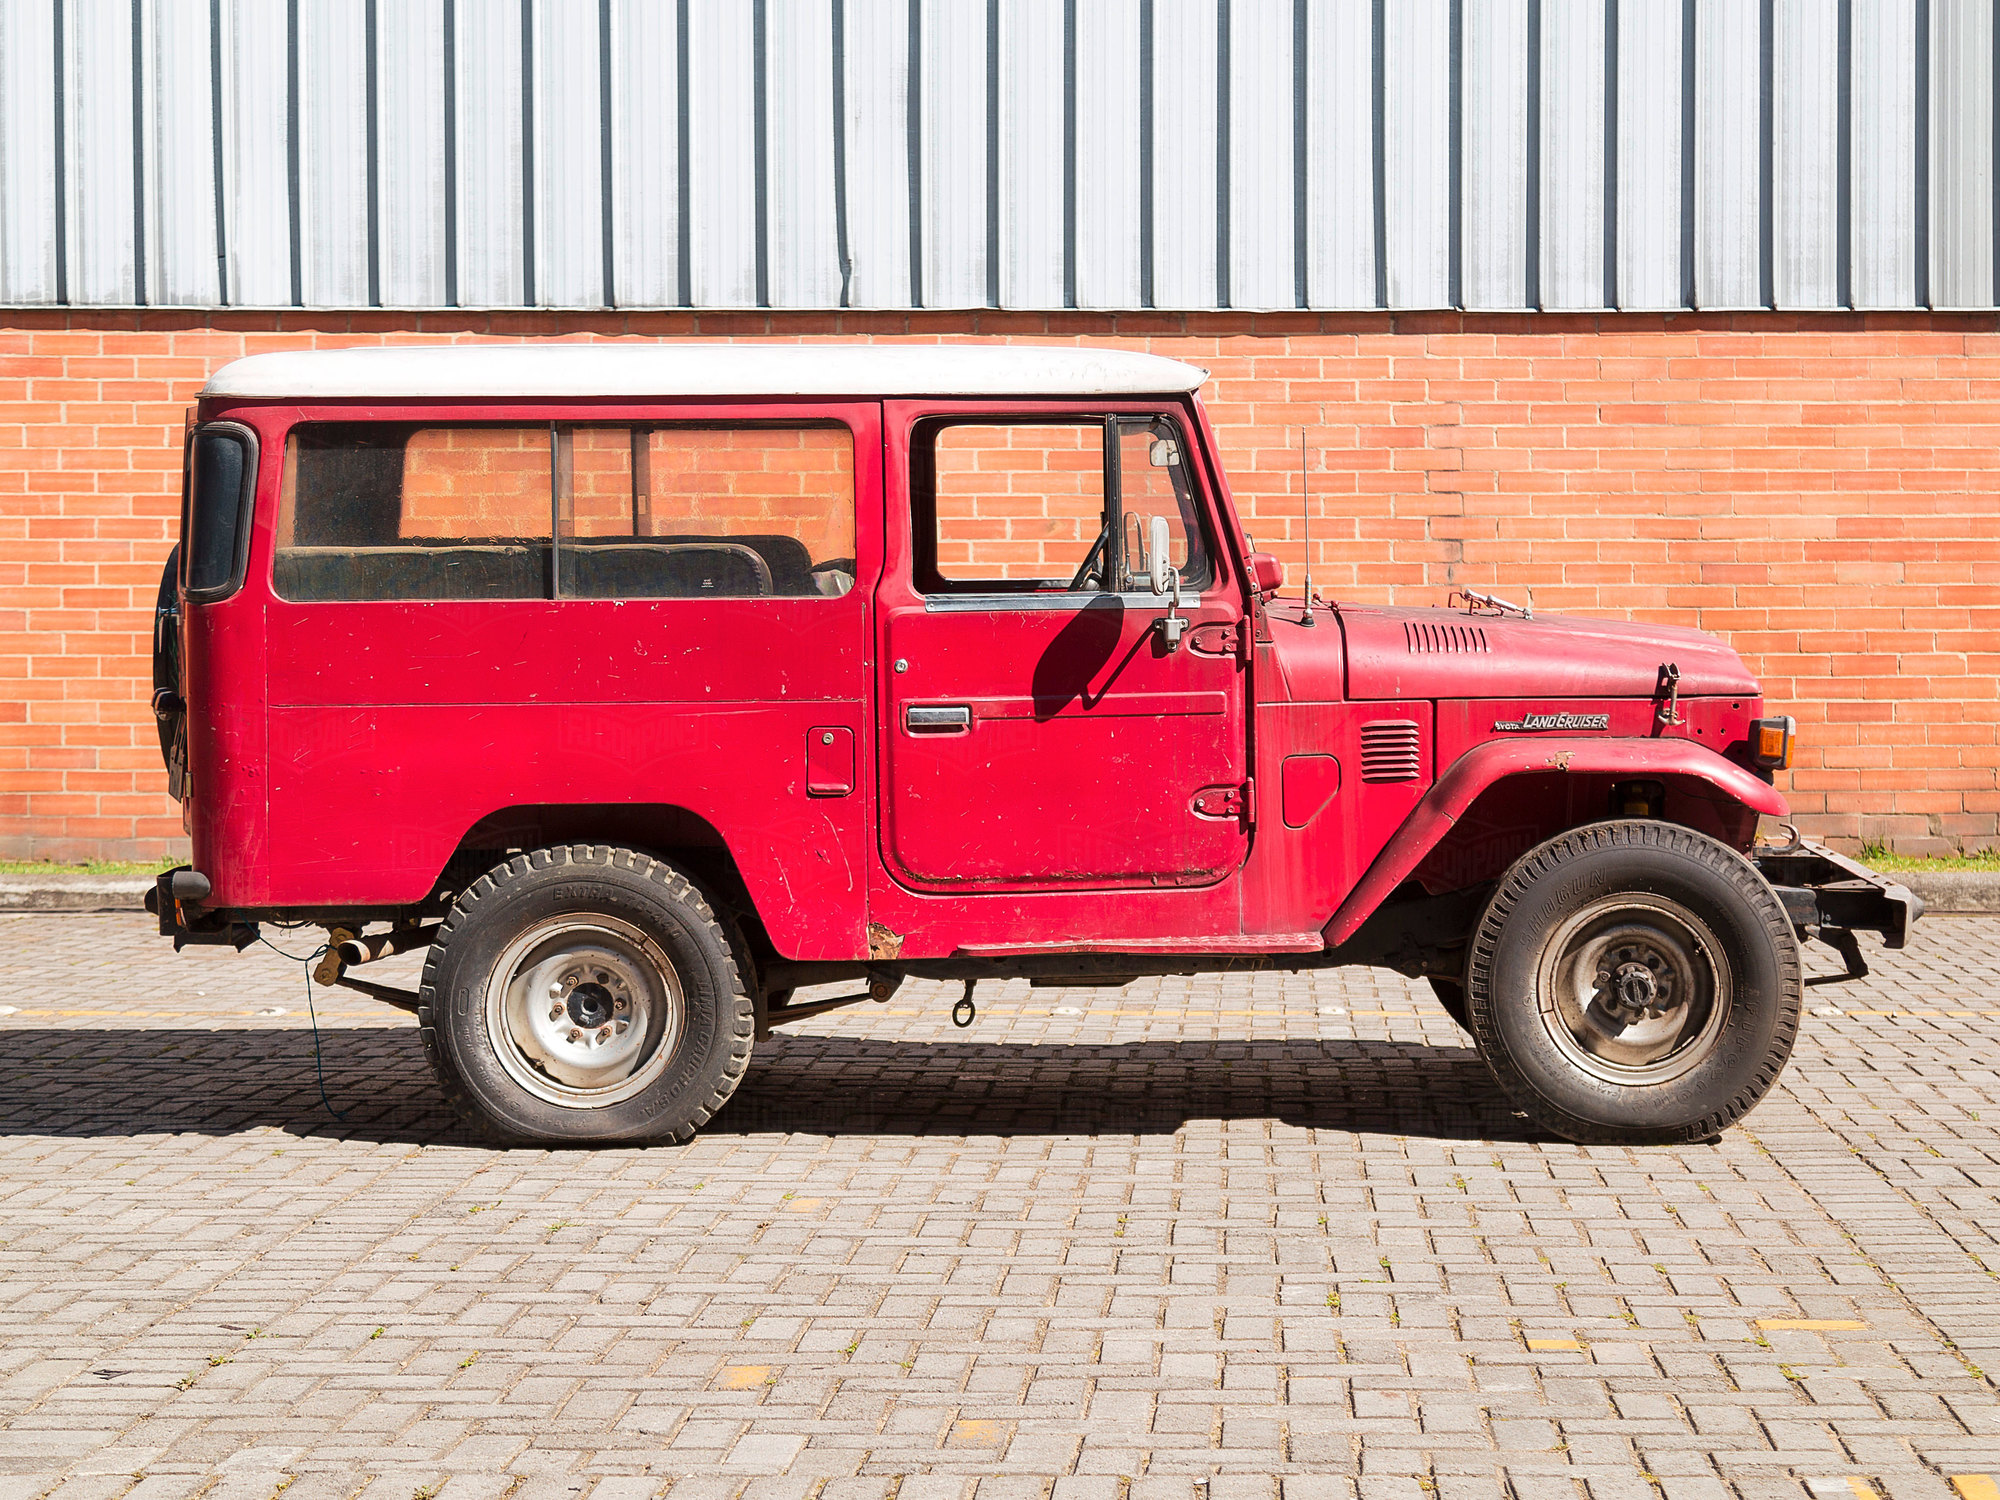 Toyota Land Cruiser 1977 FJ43 Red